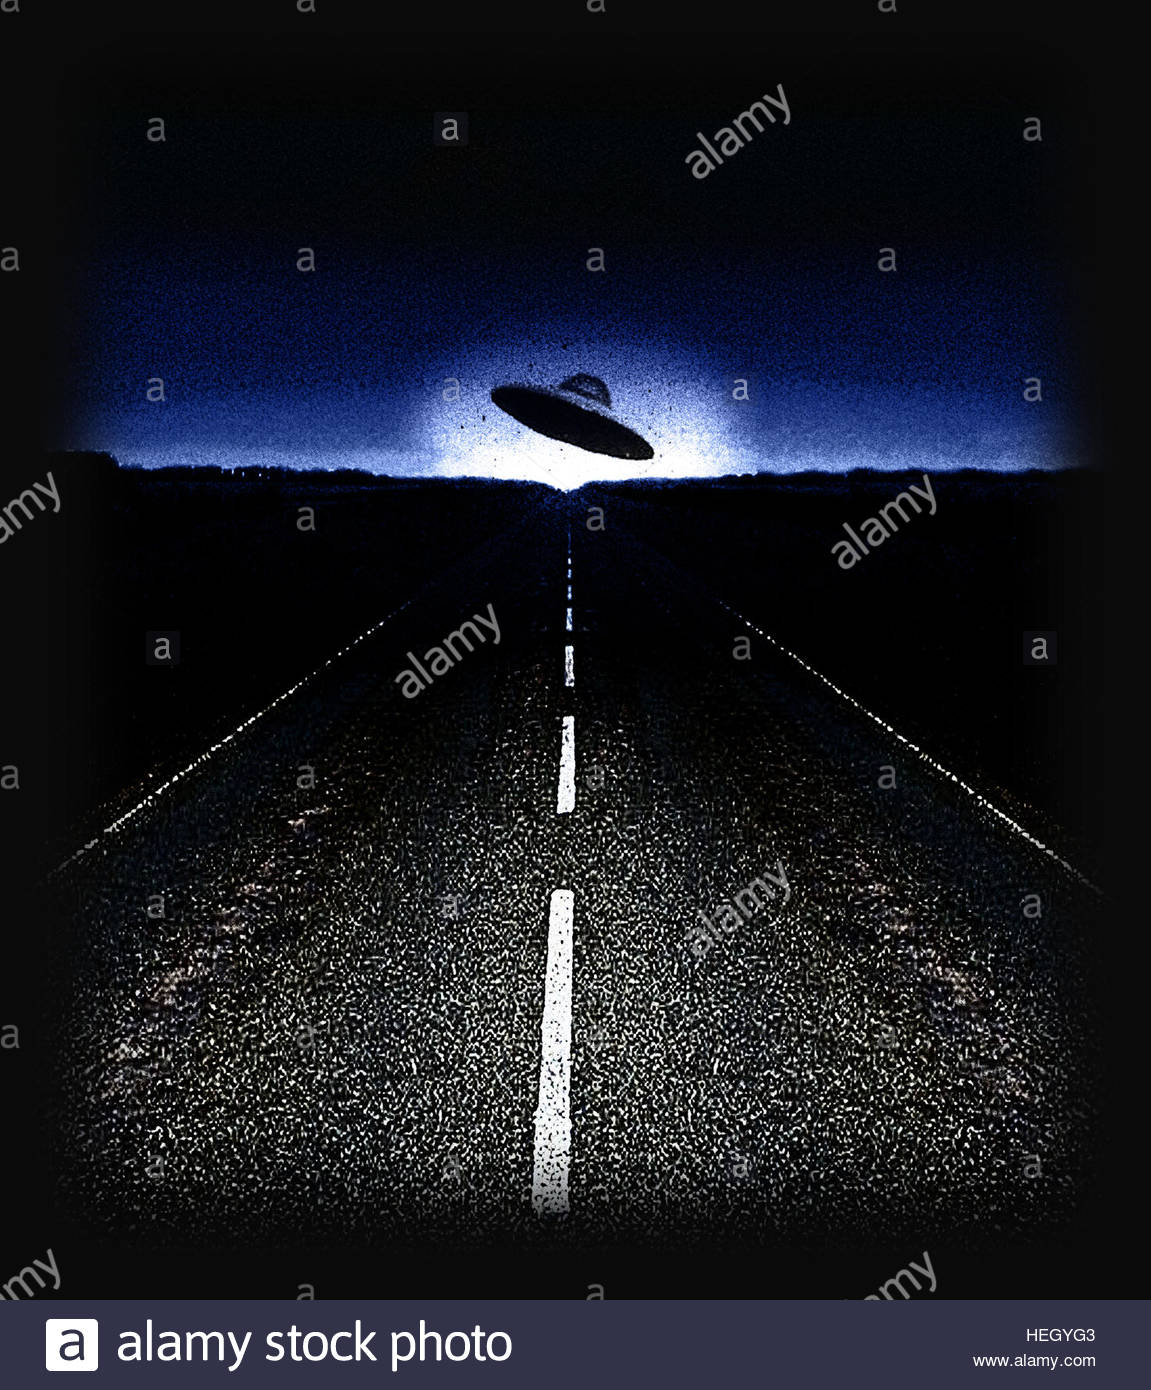 UFO on road at night retro space age gray flying saucer close encounter - Stock Image